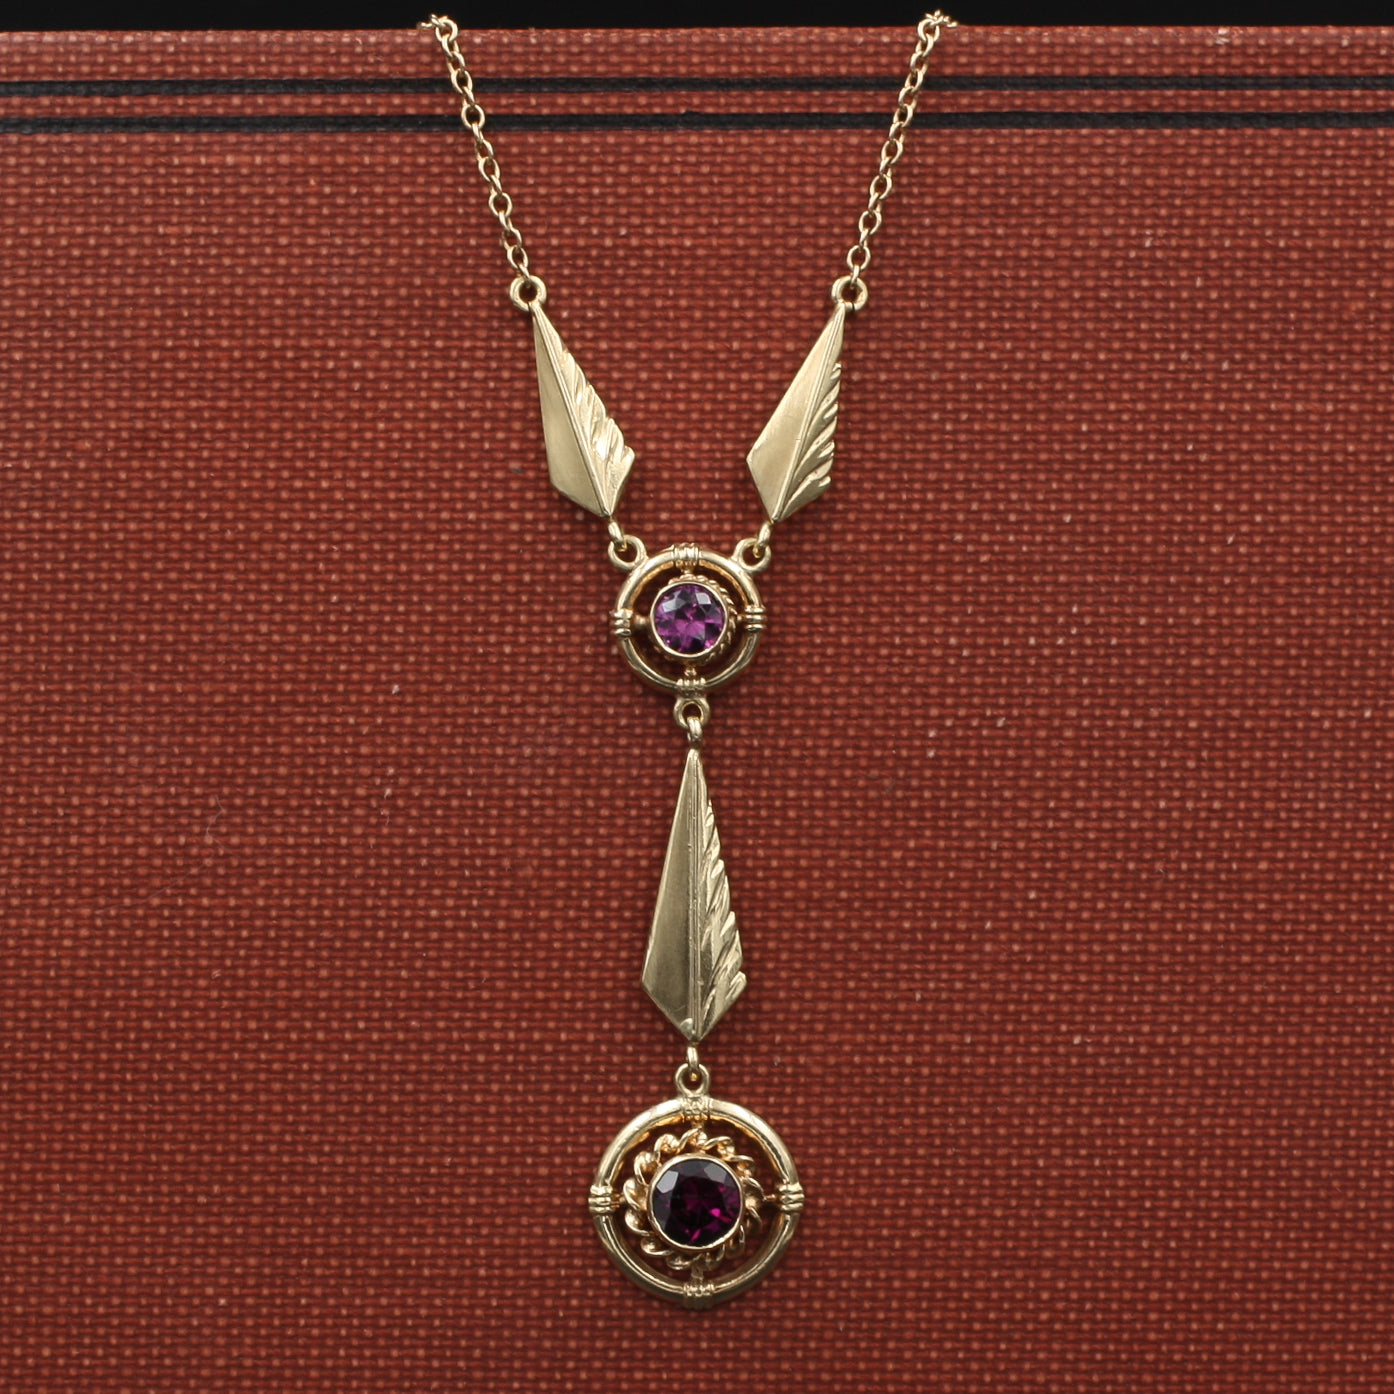 Amethyst Feathers Necklace c1930